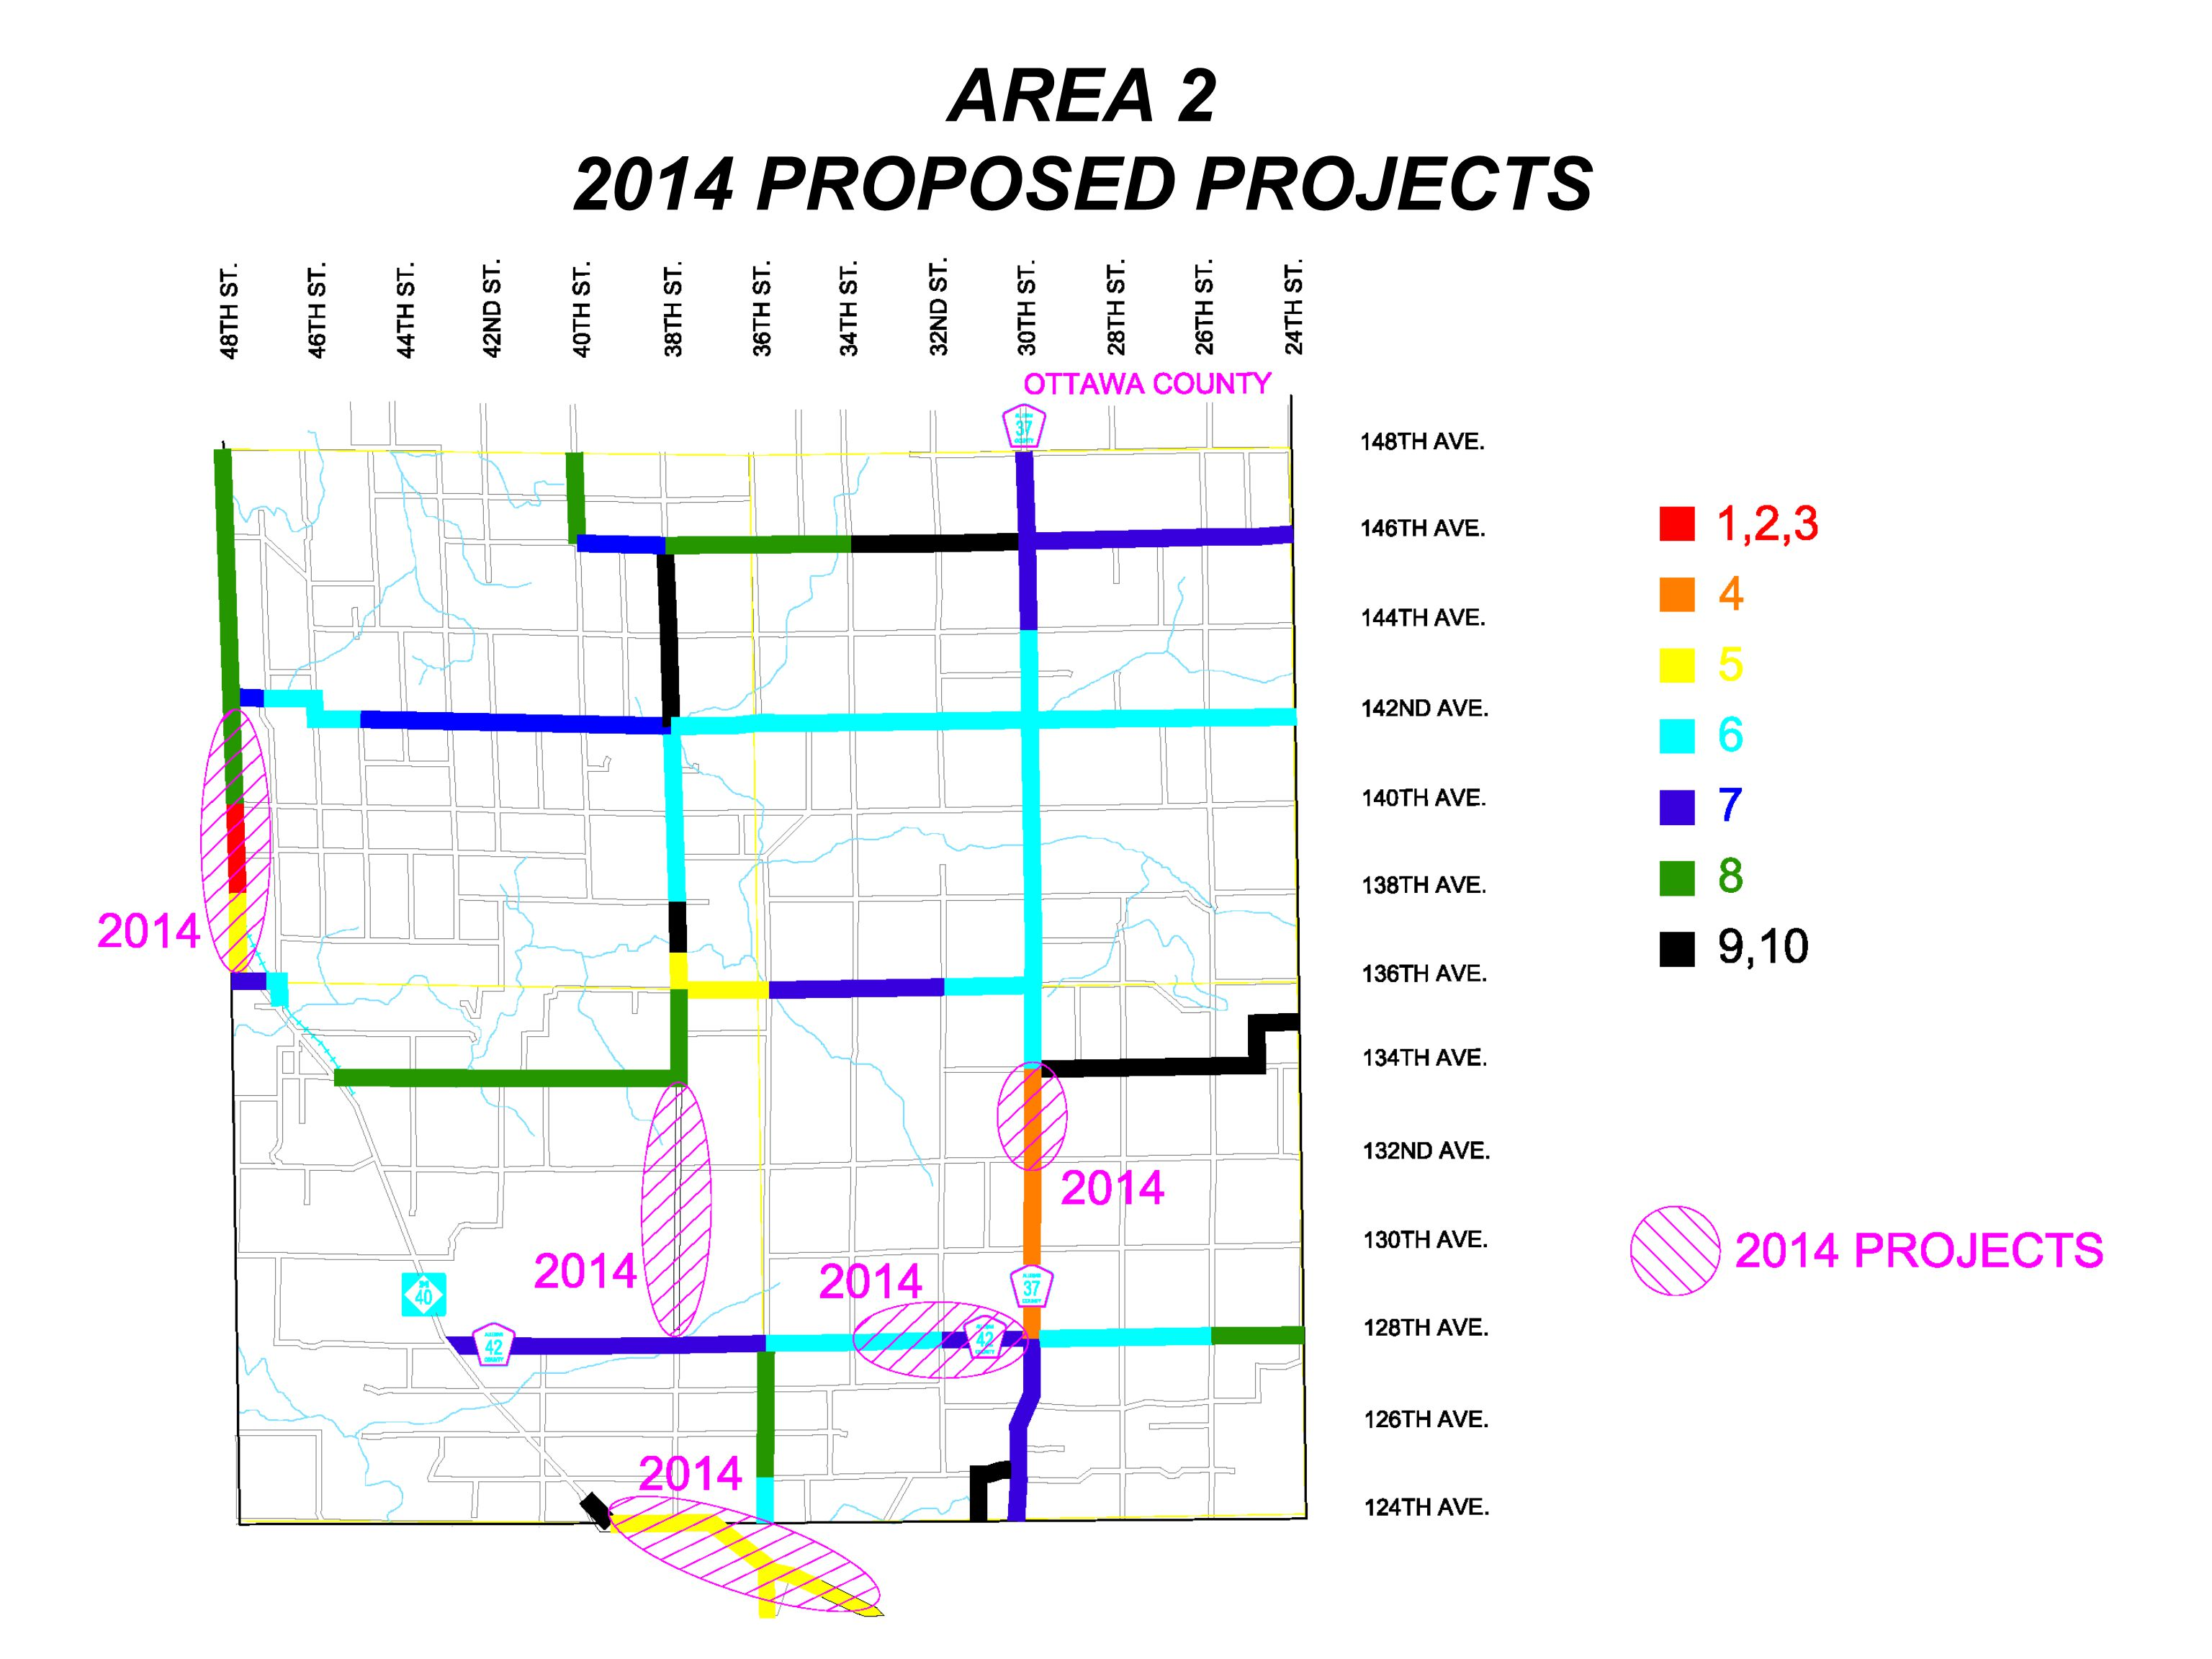 AREA 2 2014 PROPOSED PROJECTS